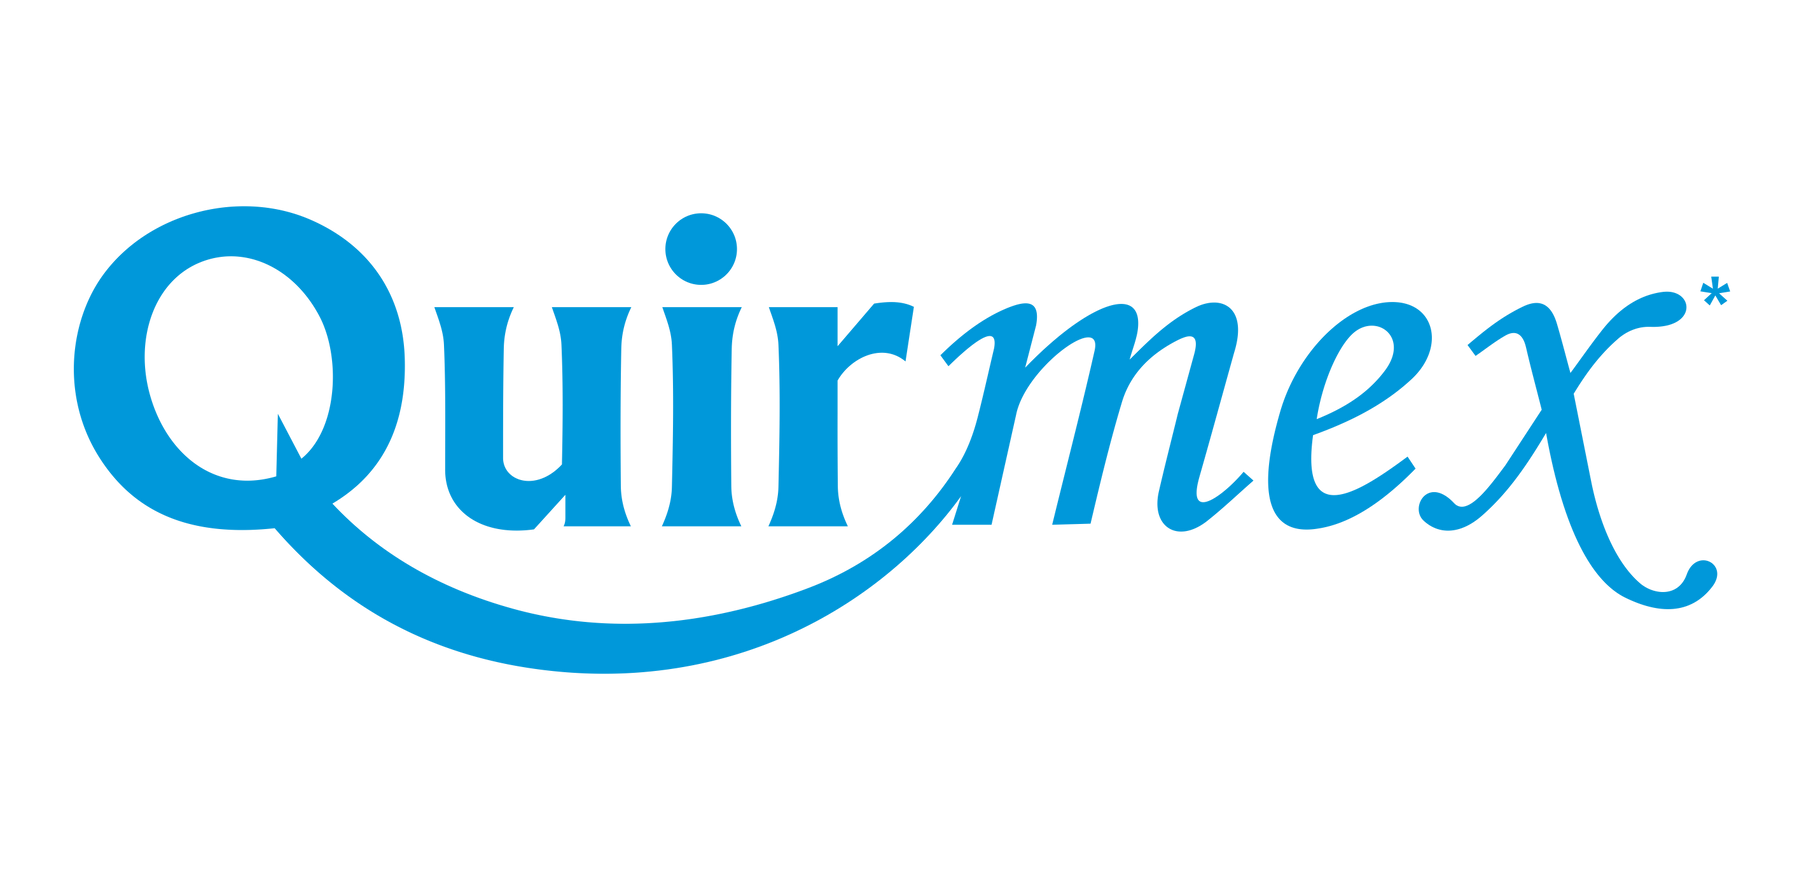 QUIRMEX.png